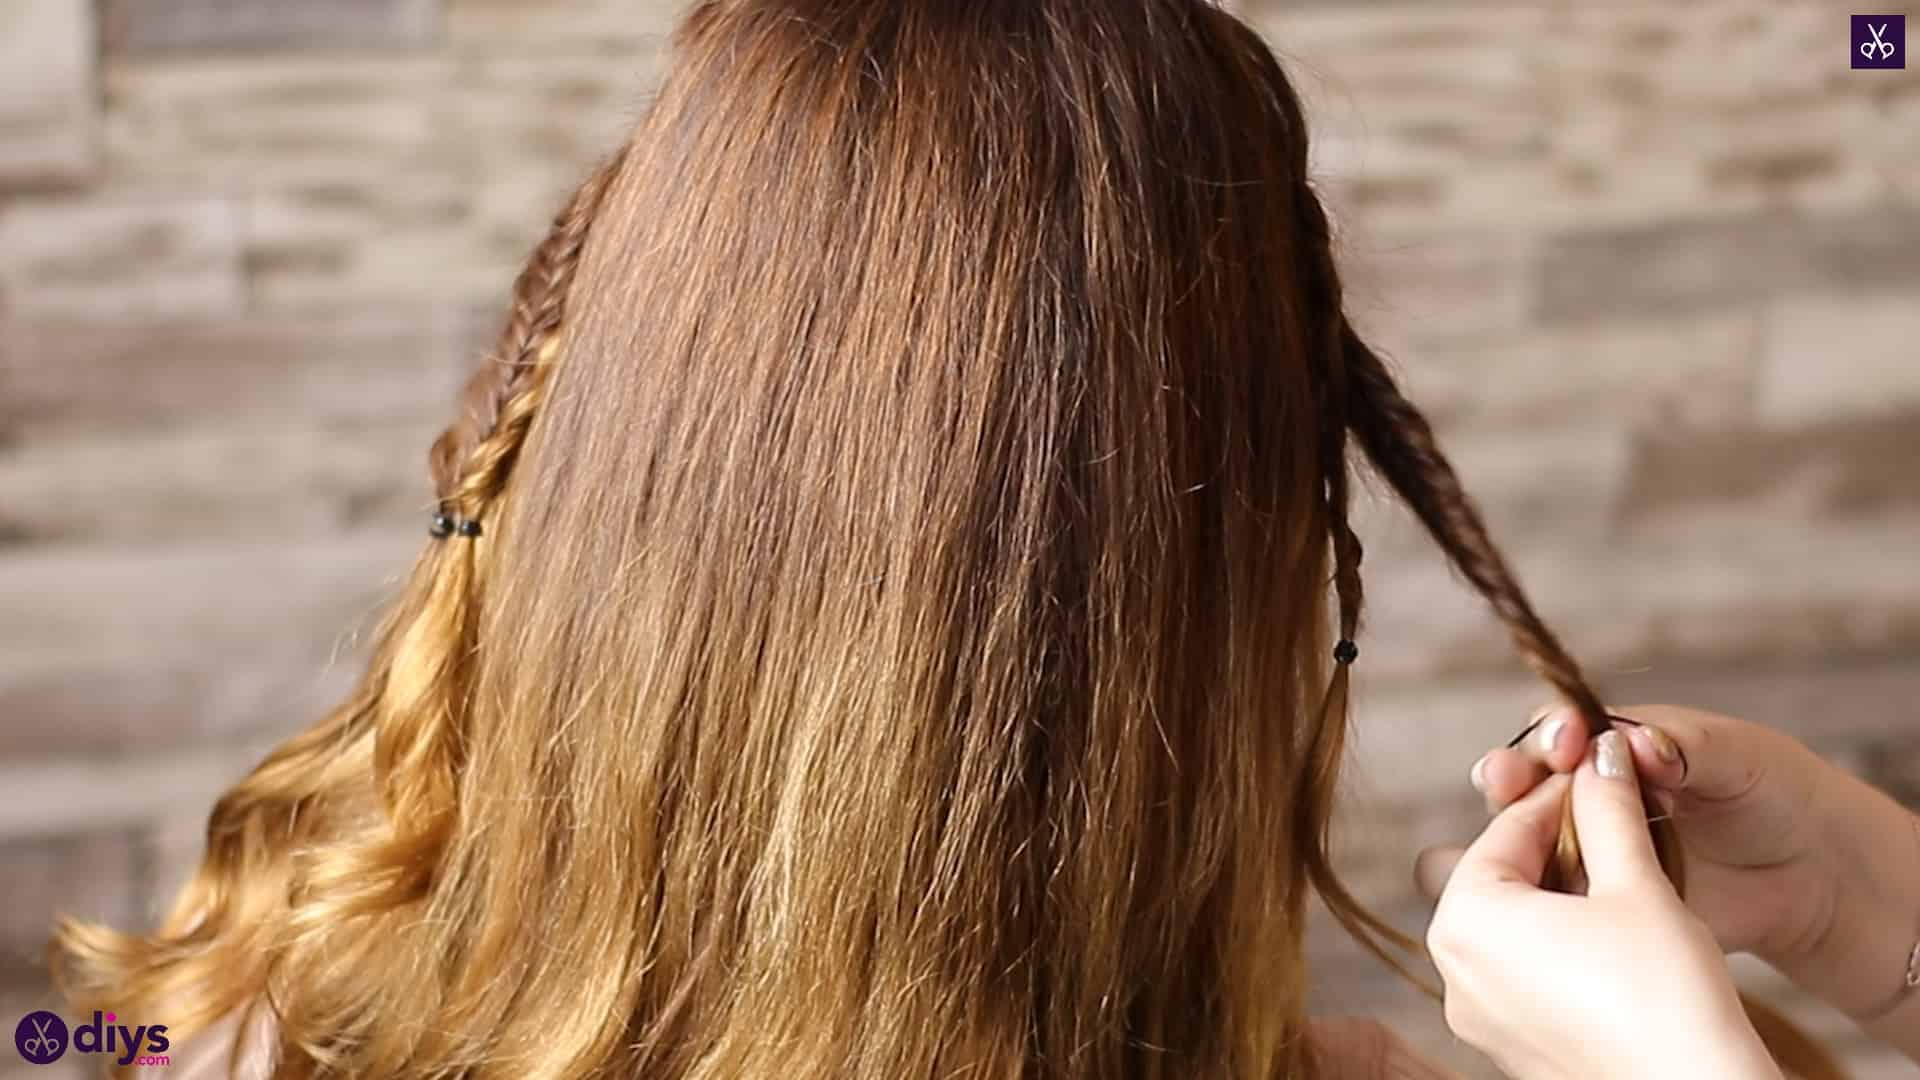 Half up, half down hairstyle for spring35